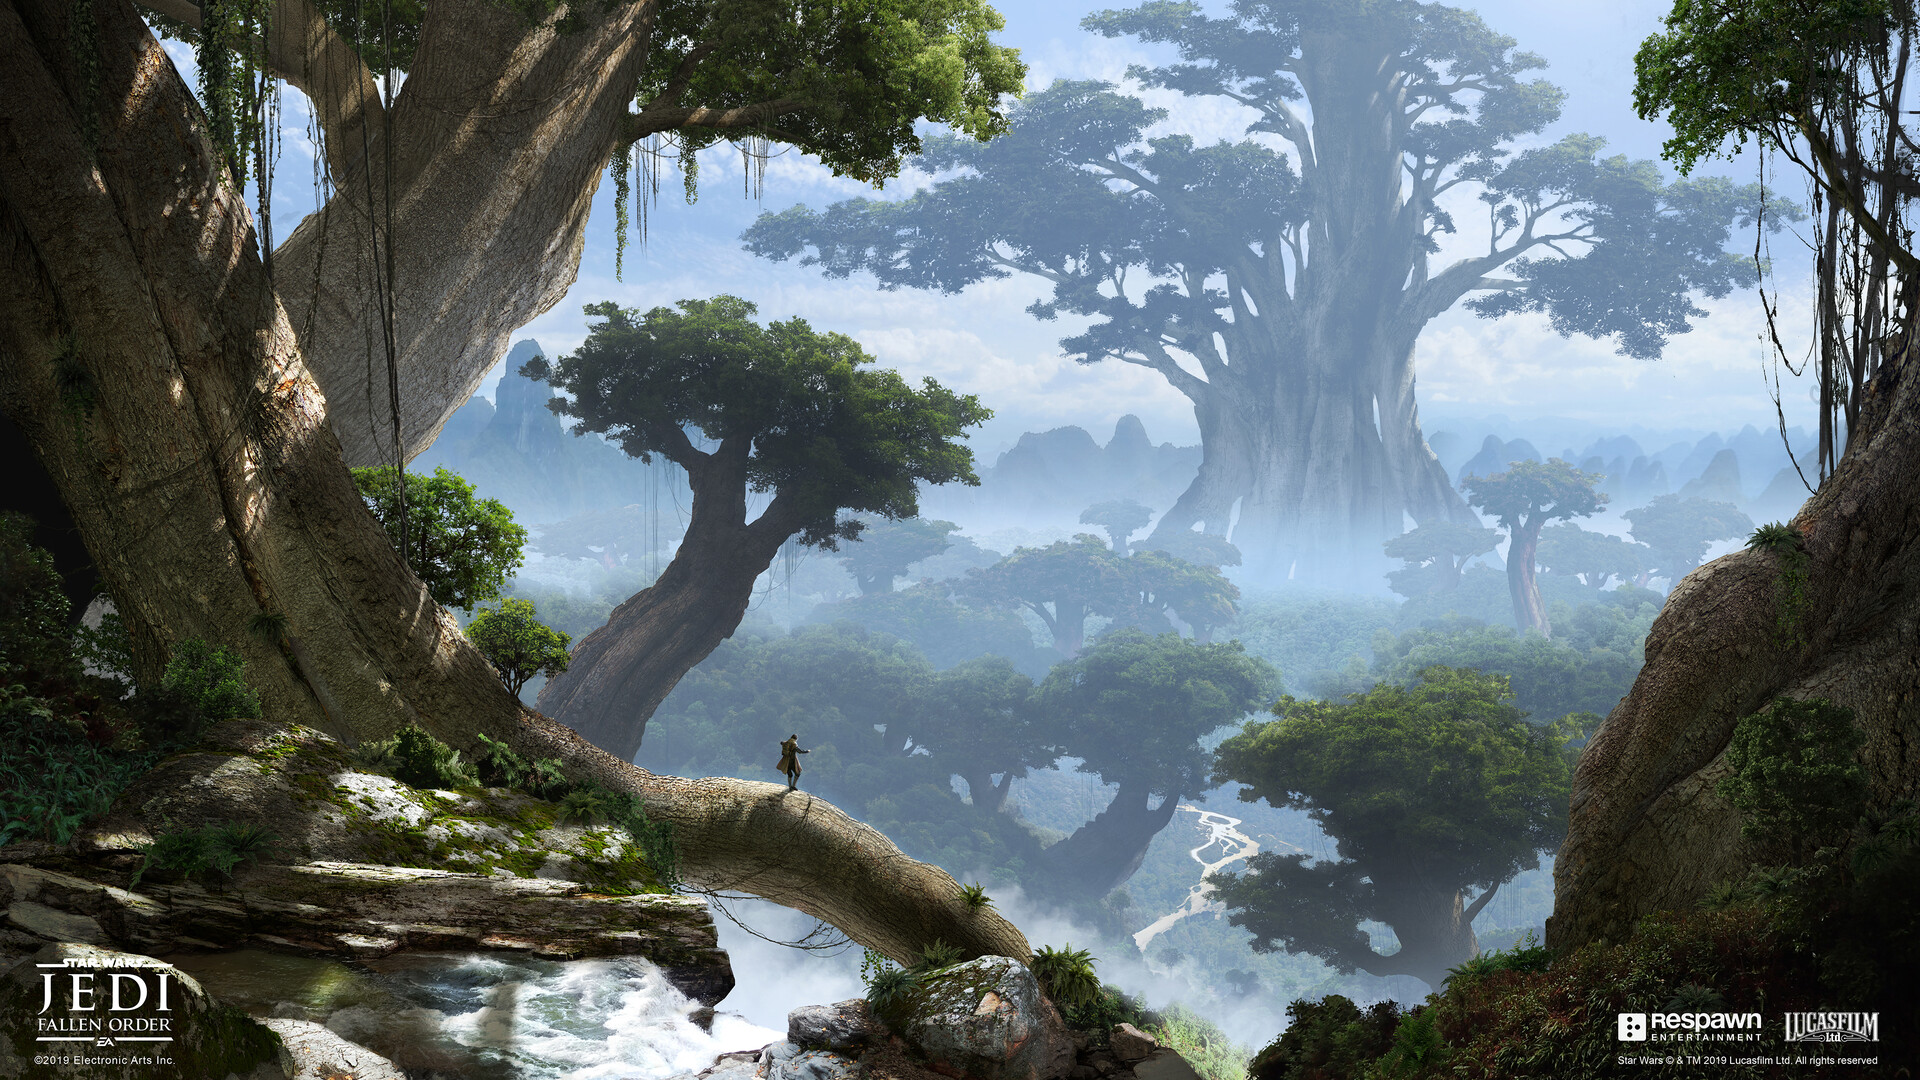 jean-francois-rey-kashyyyk-great-tree.jp